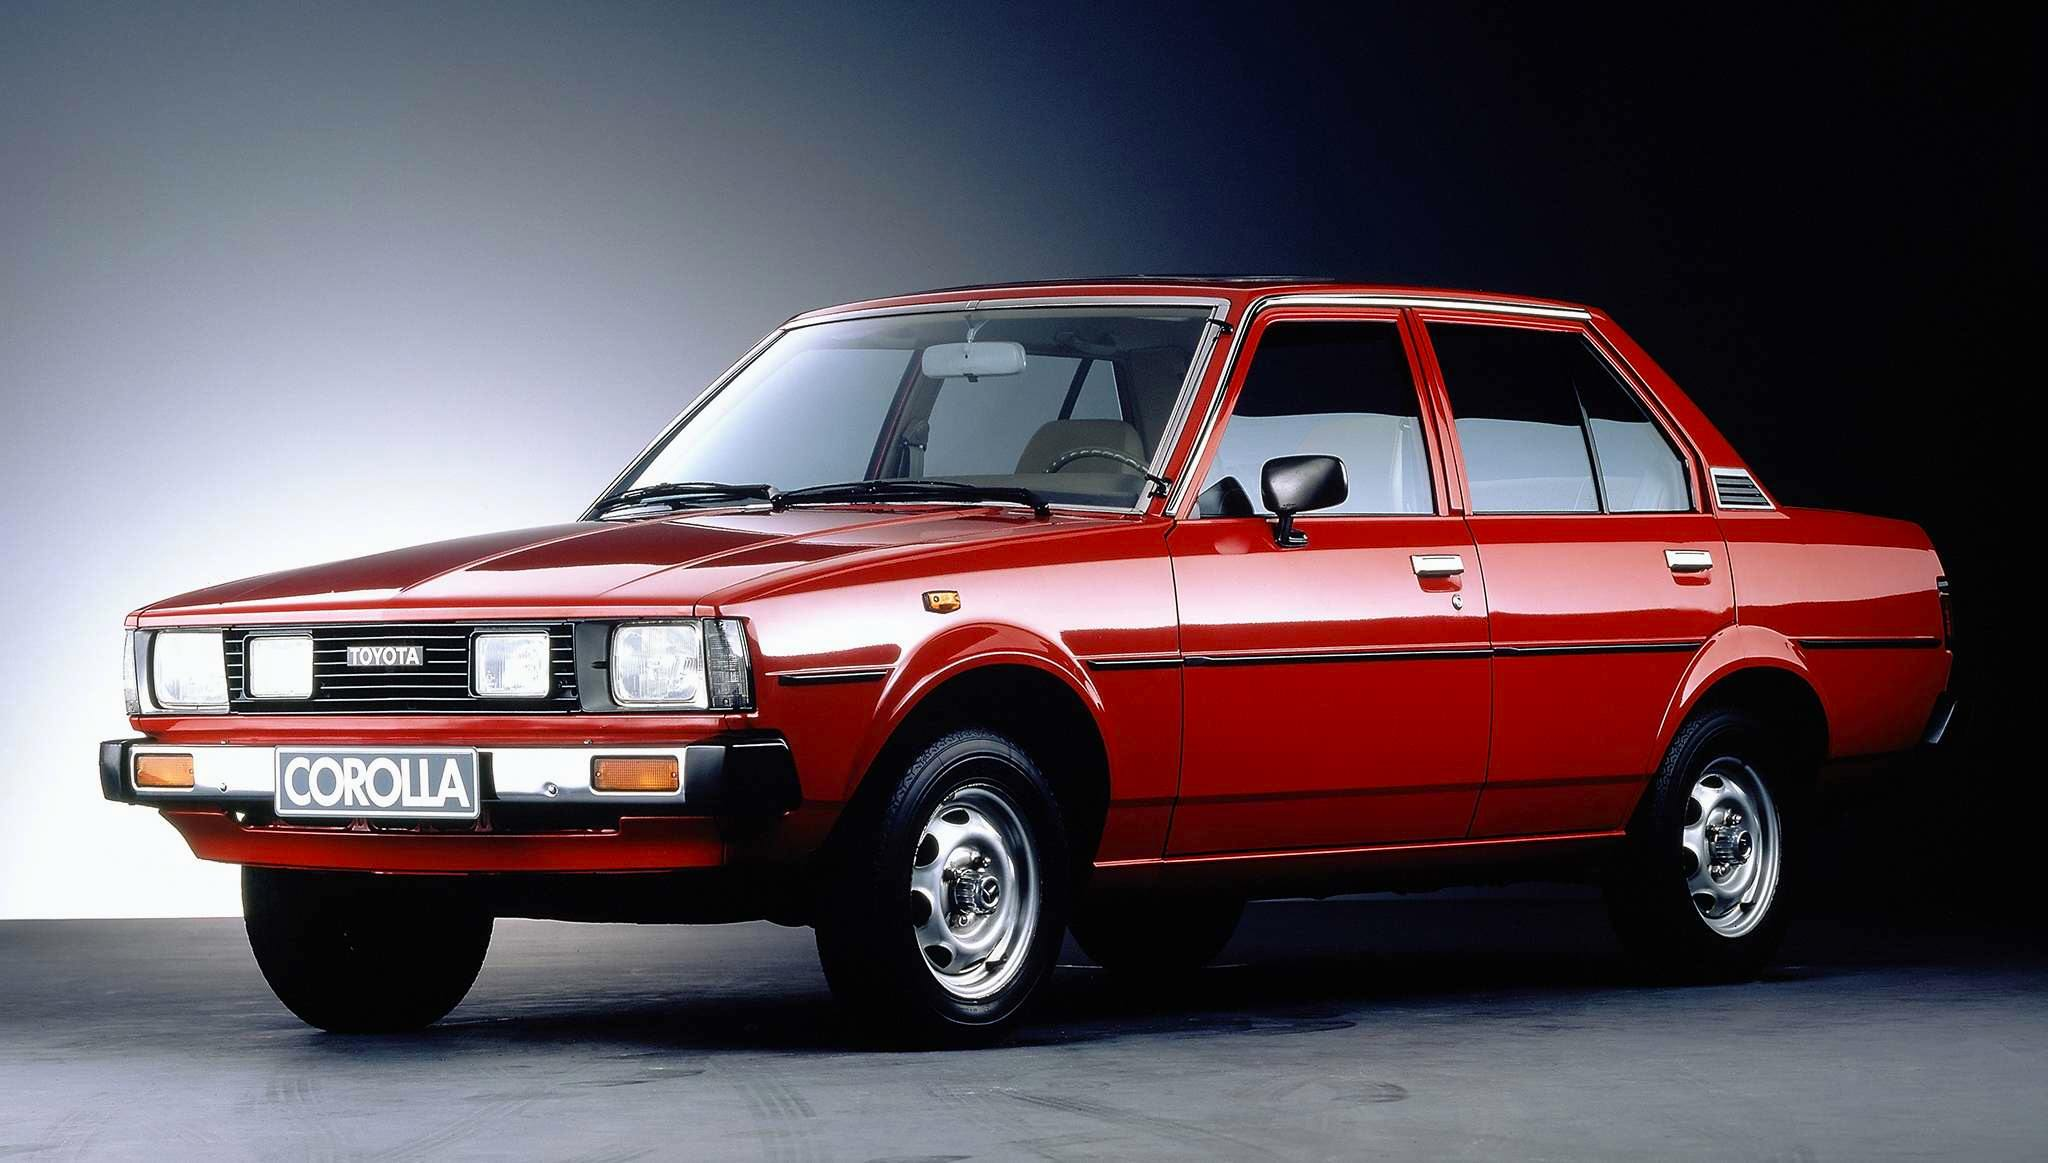 World 1980: Toyota Corolla clear leader, Renault 5 & Golf follow – Best Selling Cars Blog